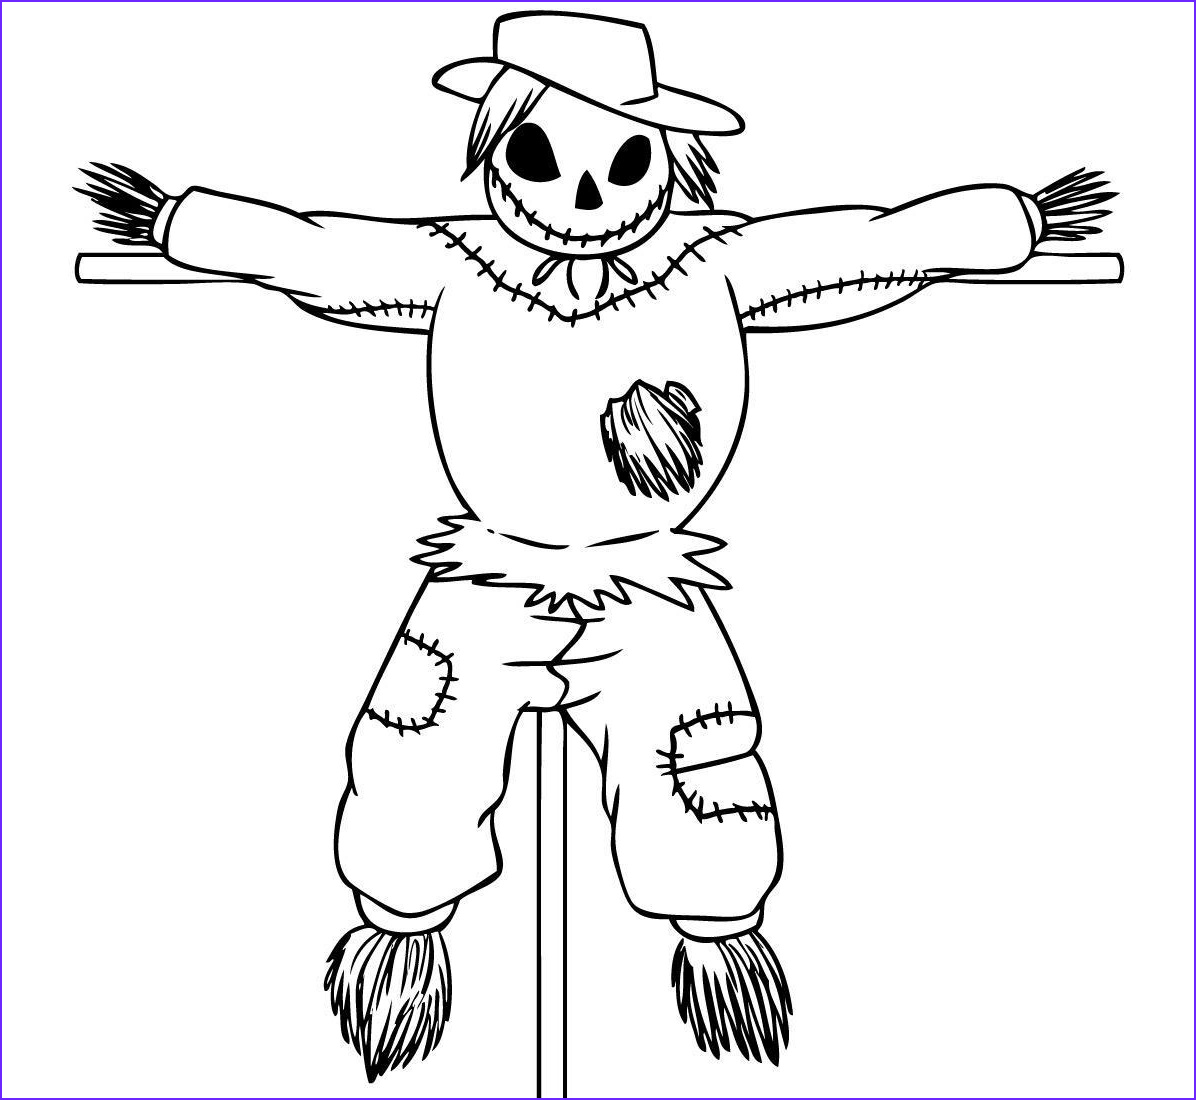 Scarecrow Coloring Beautiful Stock Free Printable Scarecrow Coloring Pages for Kids